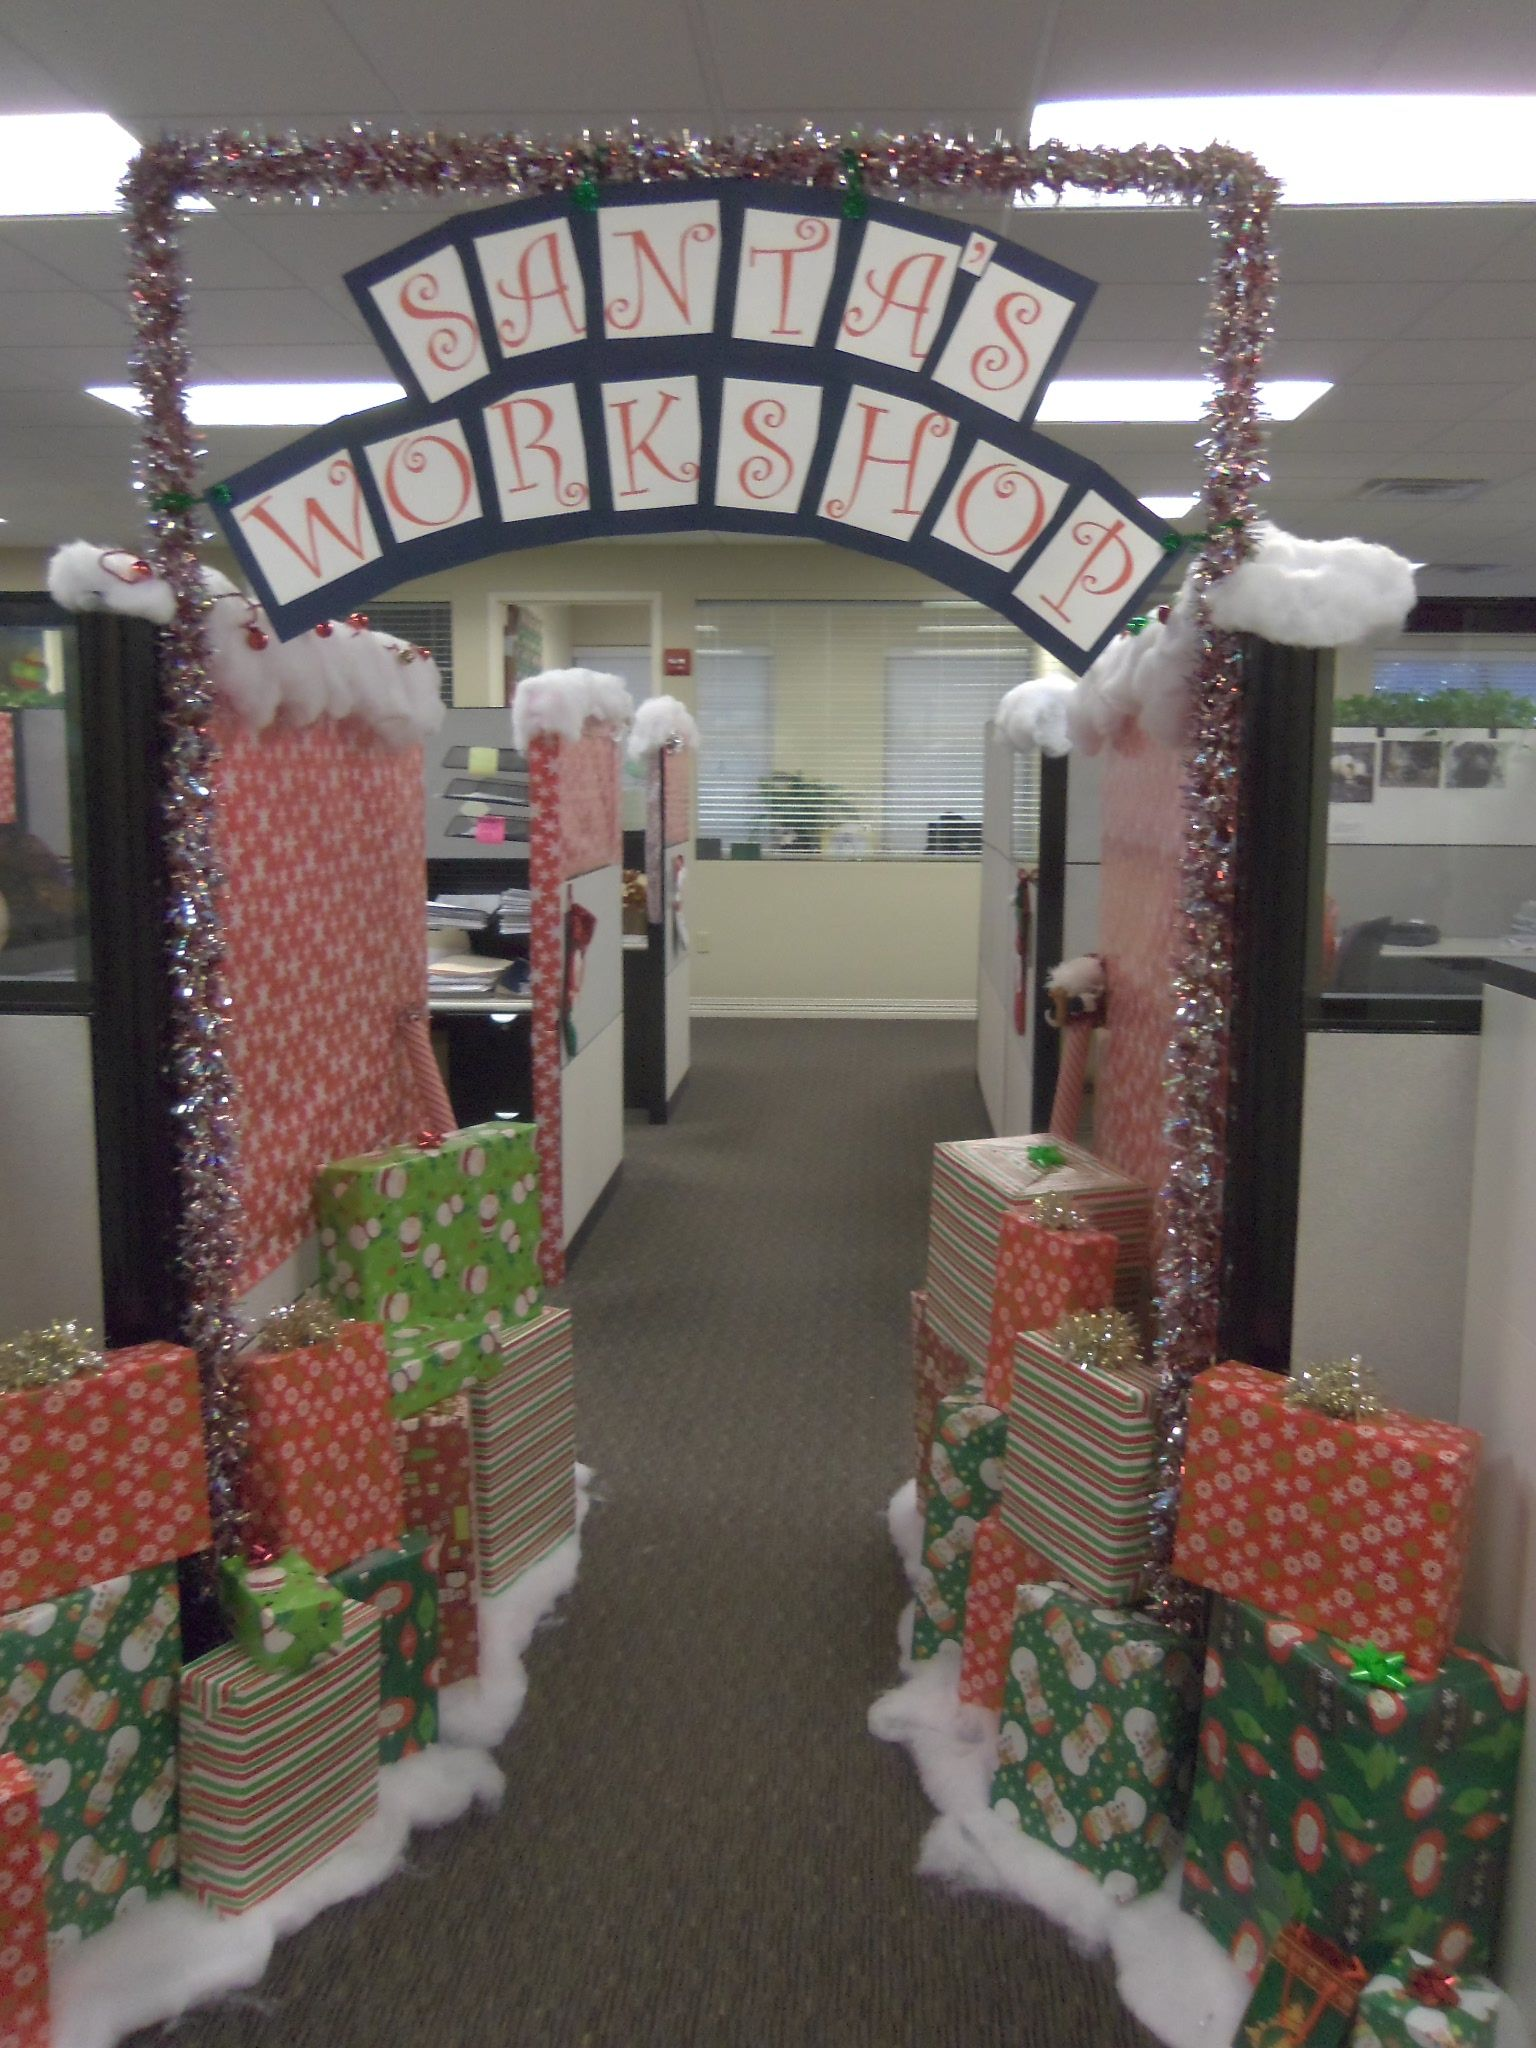 christmas decorations can boost morale at the office leland management embraces the season and encourages the holiday spirit - Christmas Arch Decorations